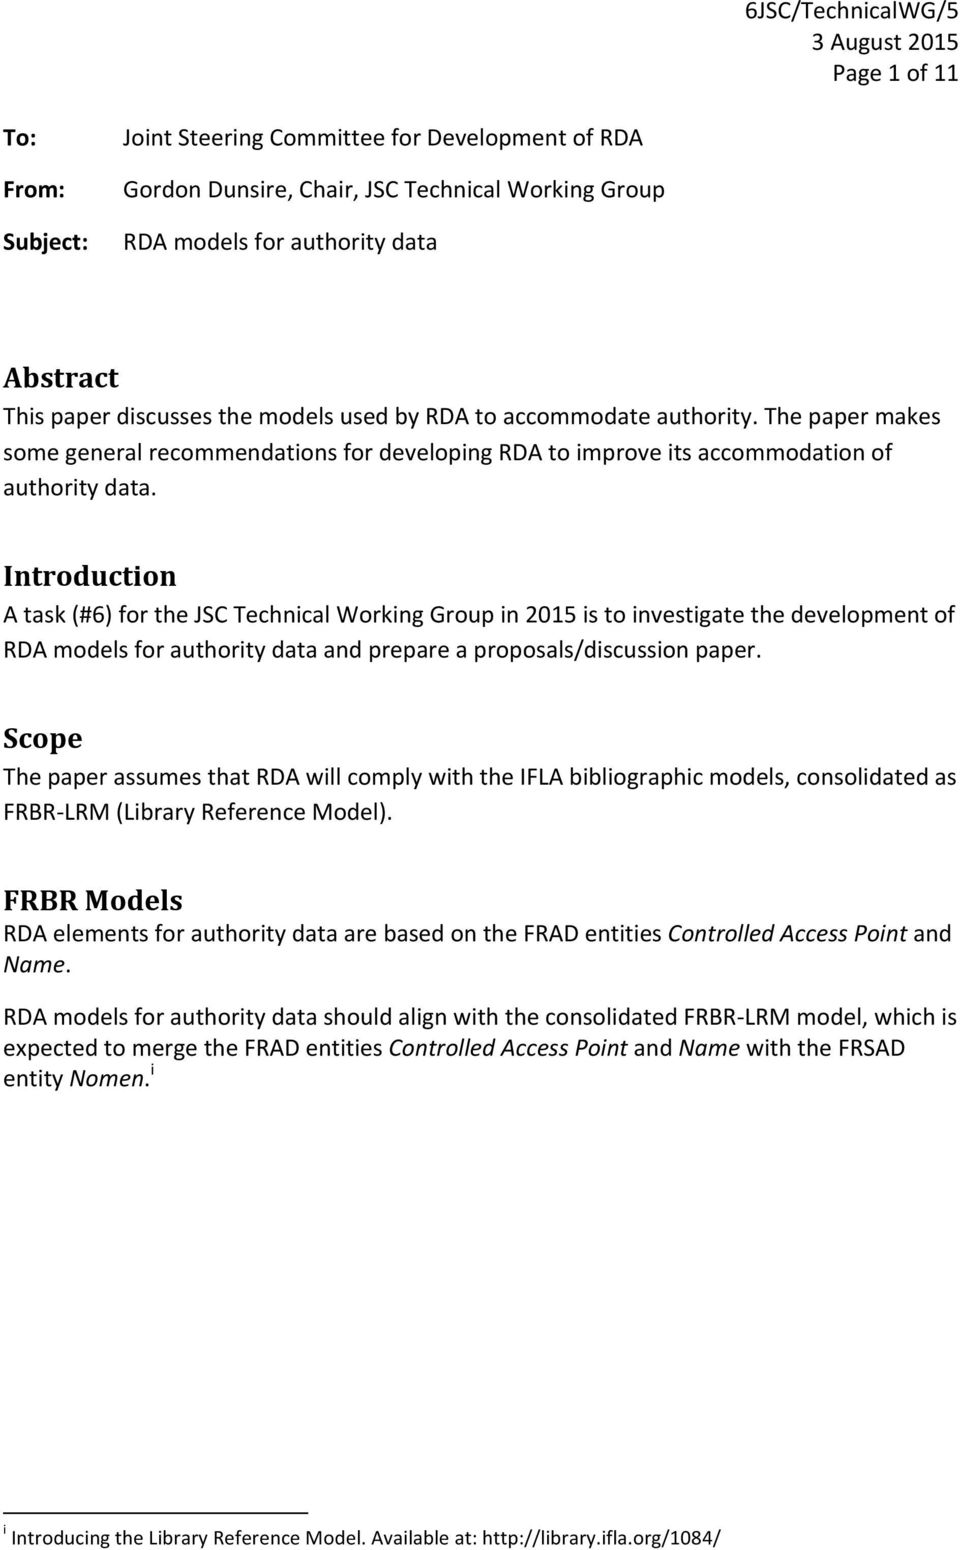 Introduction A task (#6) for the JSC Technical Working Group in 2015 is to investigate the development of RDA models for authority data and prepare a proposals/discussion paper.